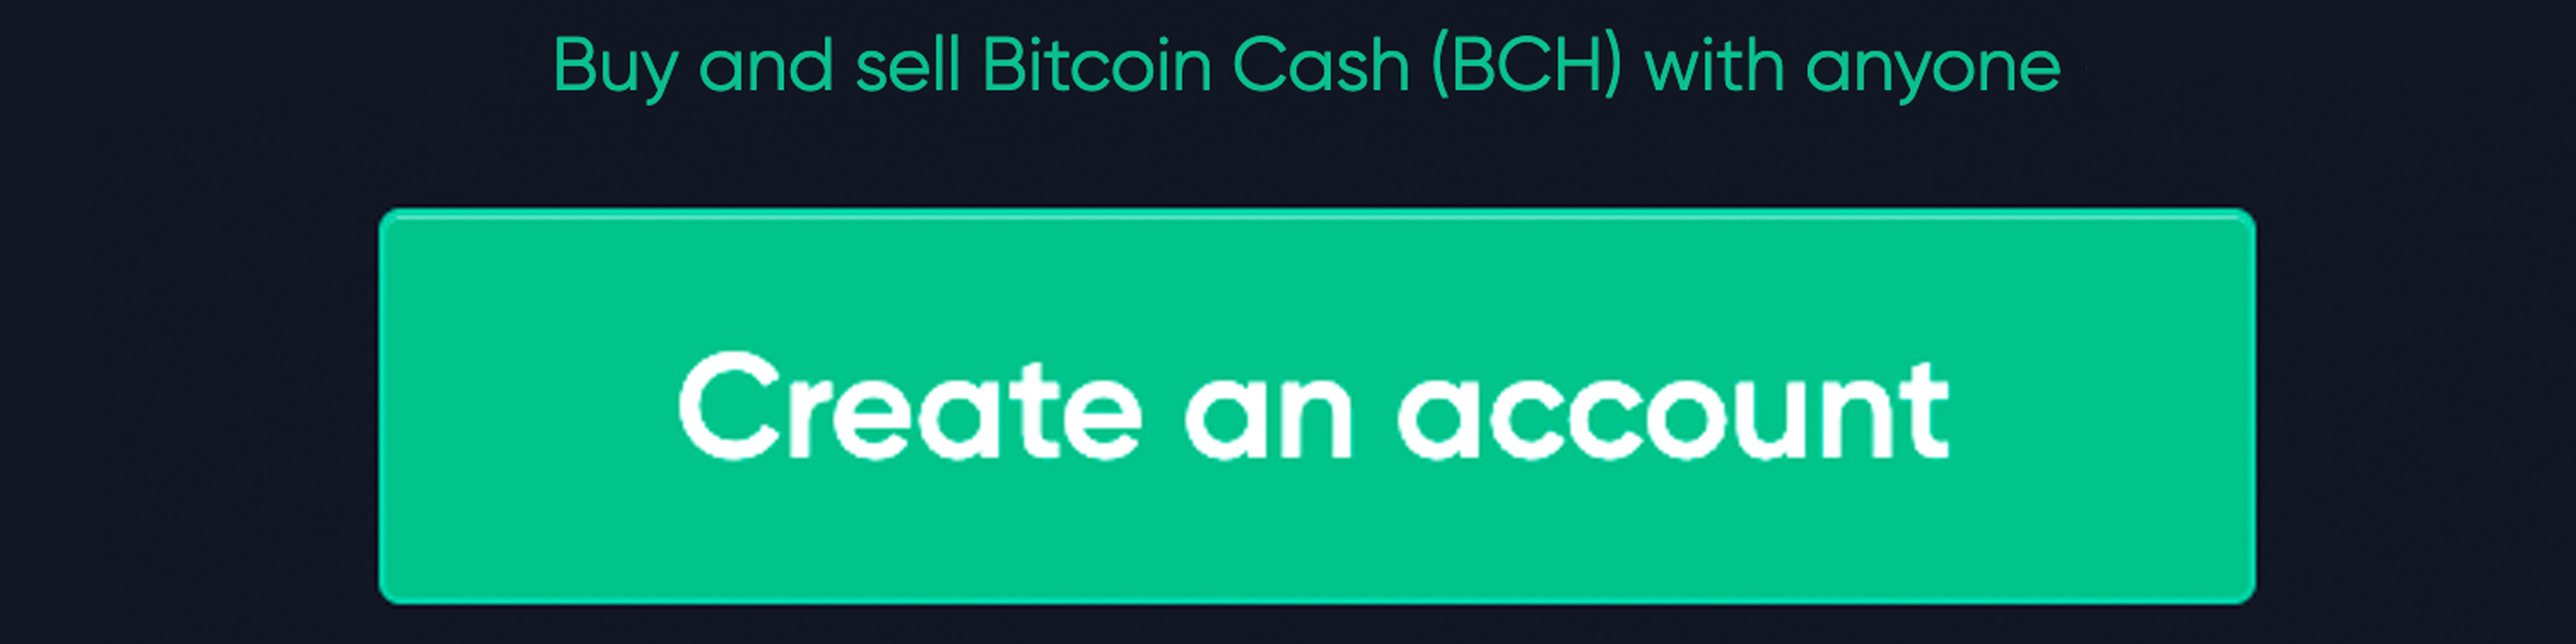 Local.Bitcoin.com Gathers 56K Accounts and $200M Worth of Trades Initiated